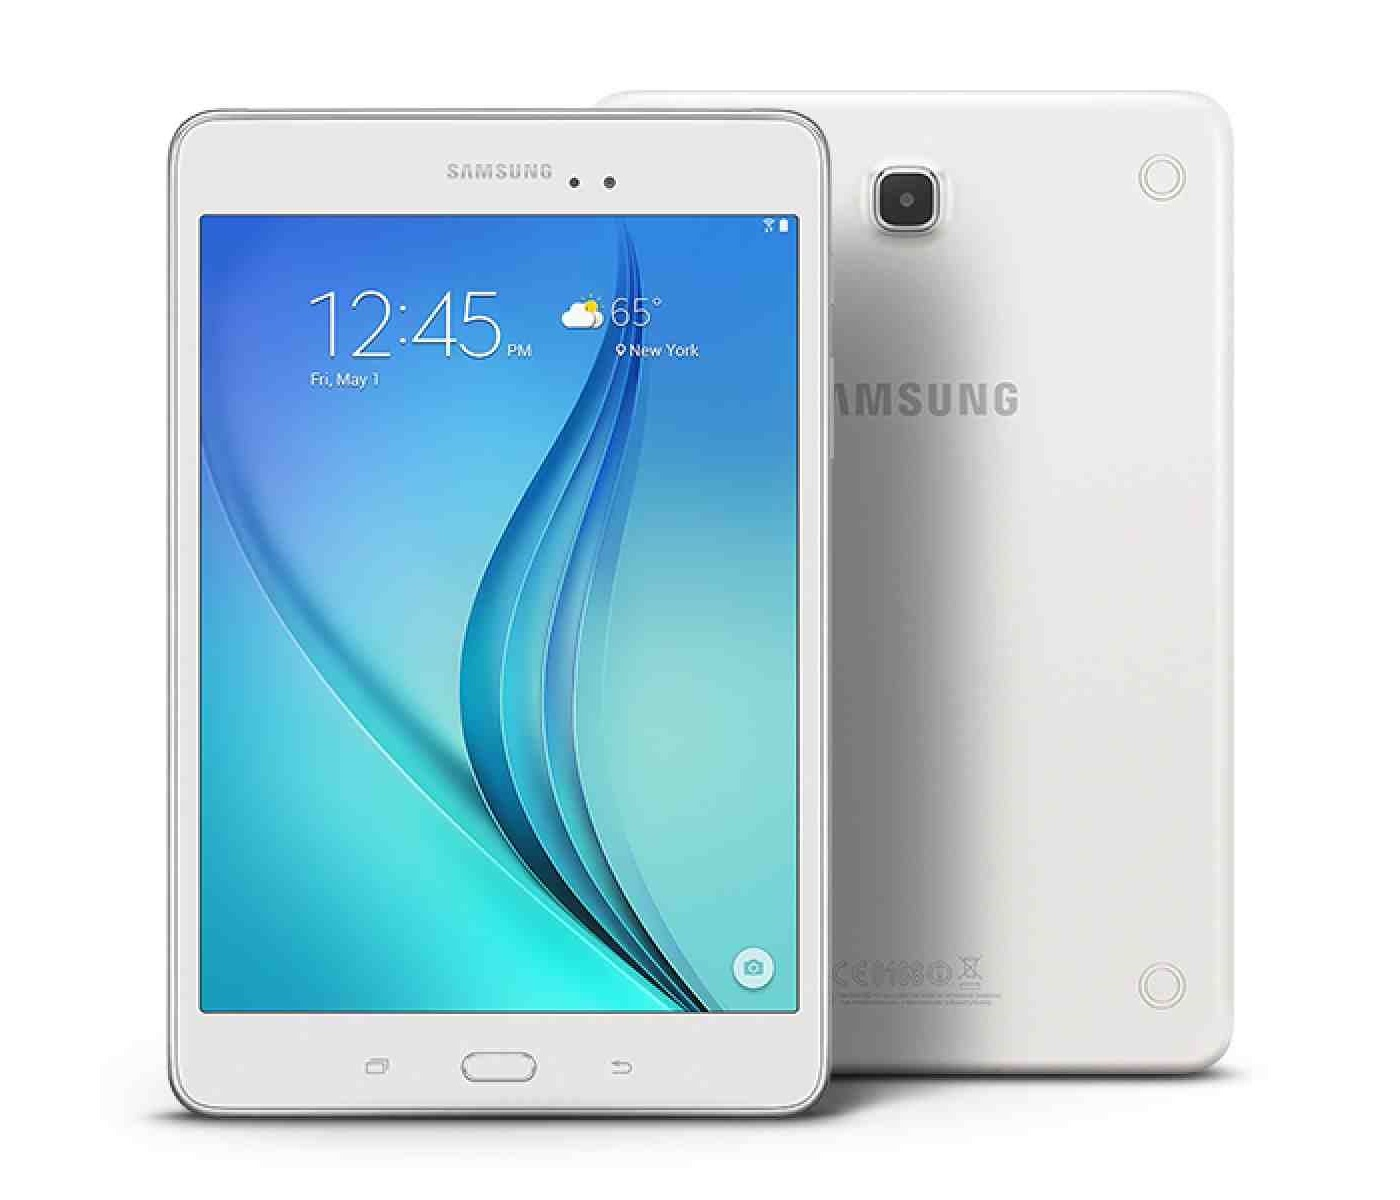 samsung galaxy tab a 10 1 inch tablet 2gb ram 16gb wifi. Black Bedroom Furniture Sets. Home Design Ideas